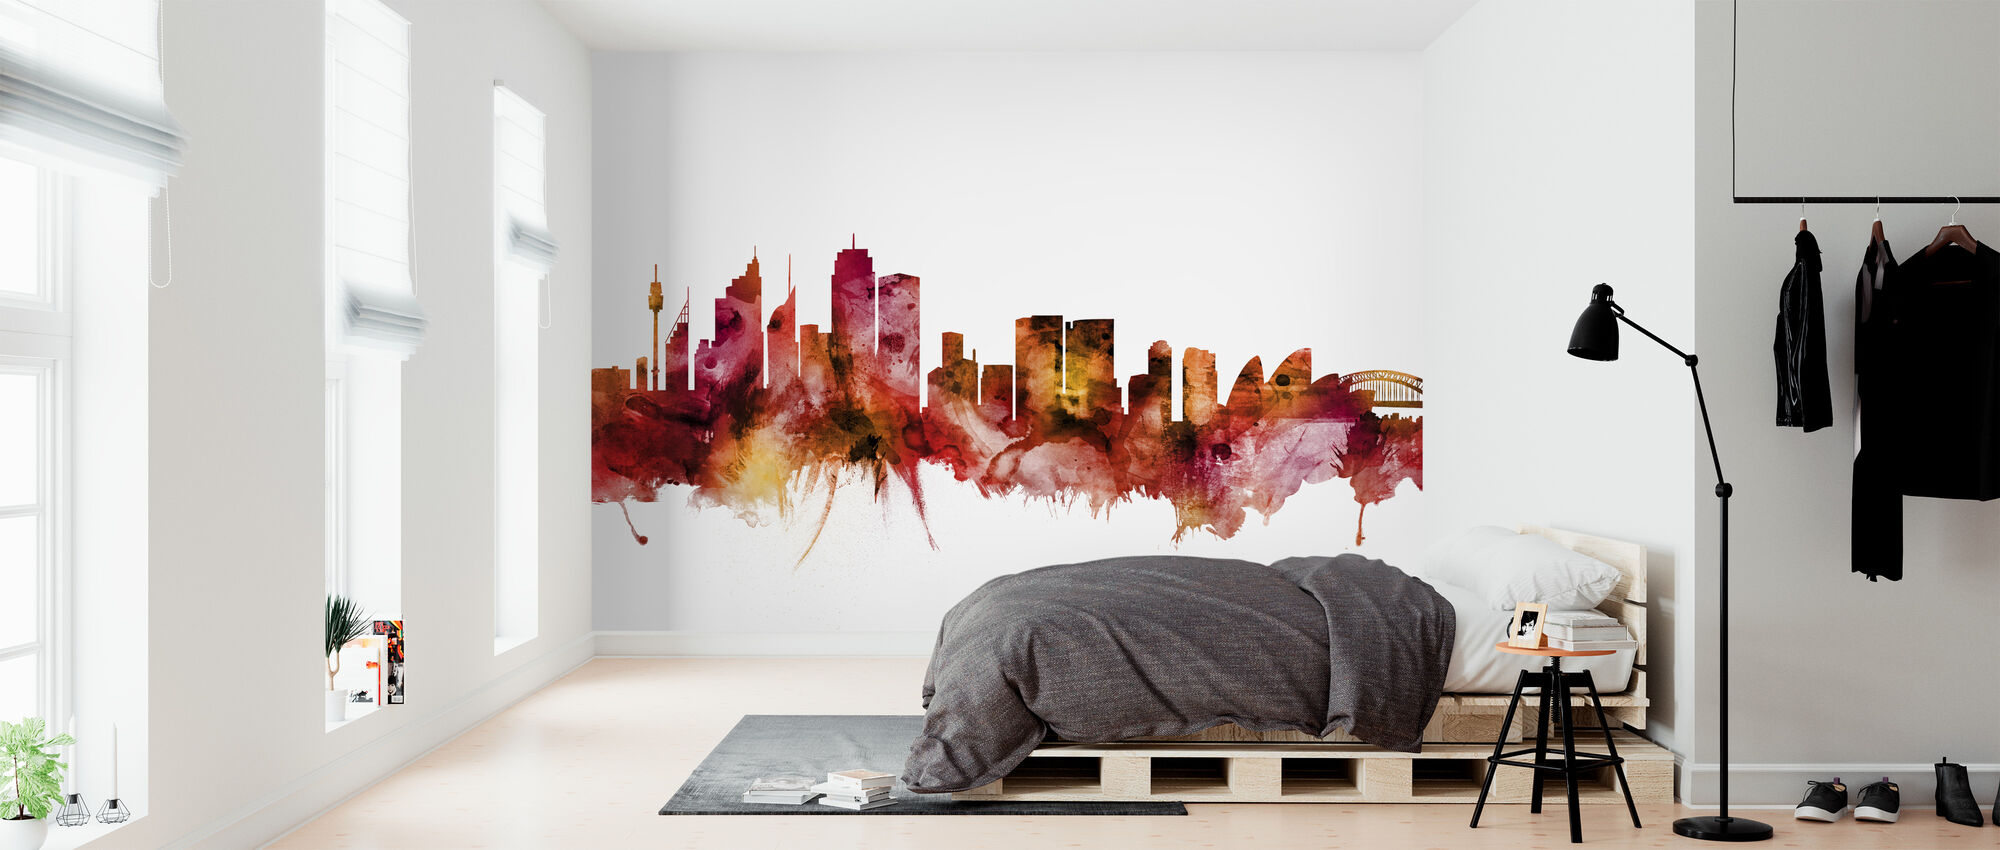 Sydney Australia Skyline - Wallpaper - Bedroom